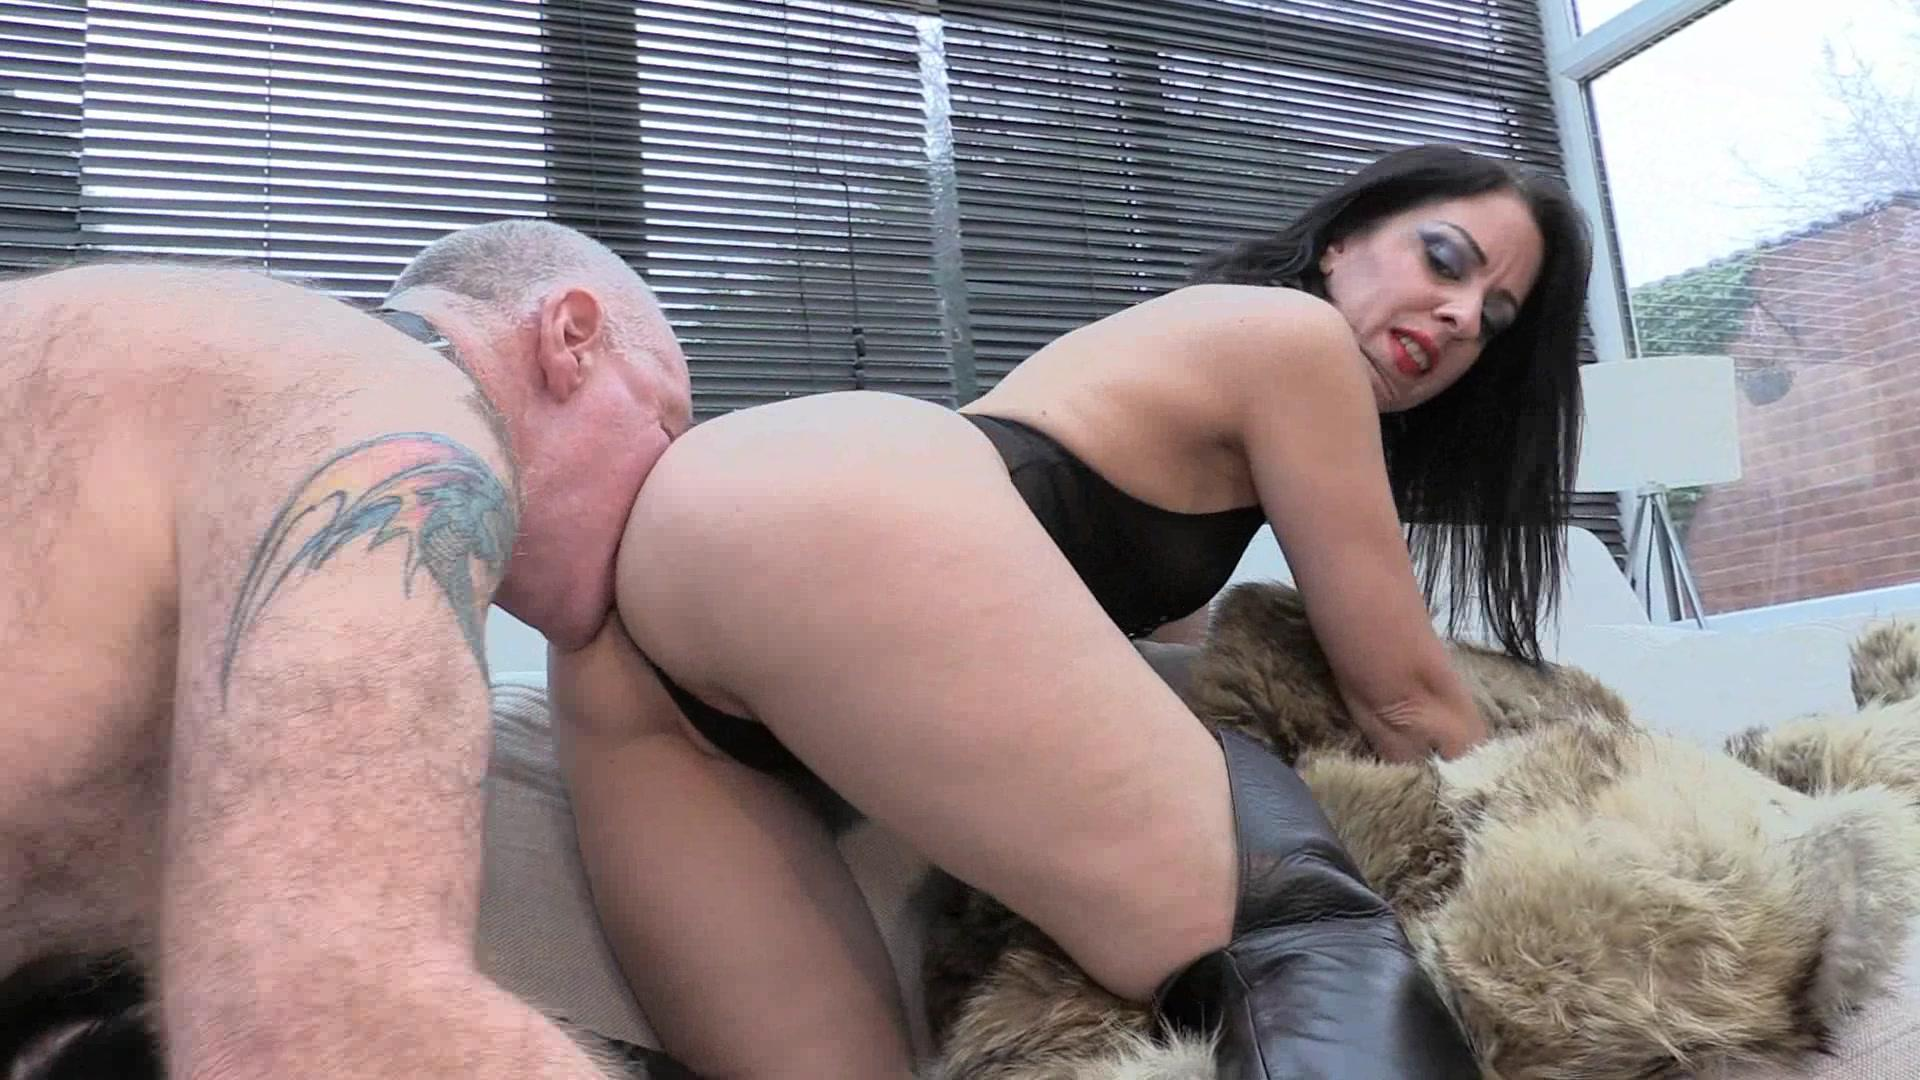 Delirium big booty fucking nude girls video in youtube were visited